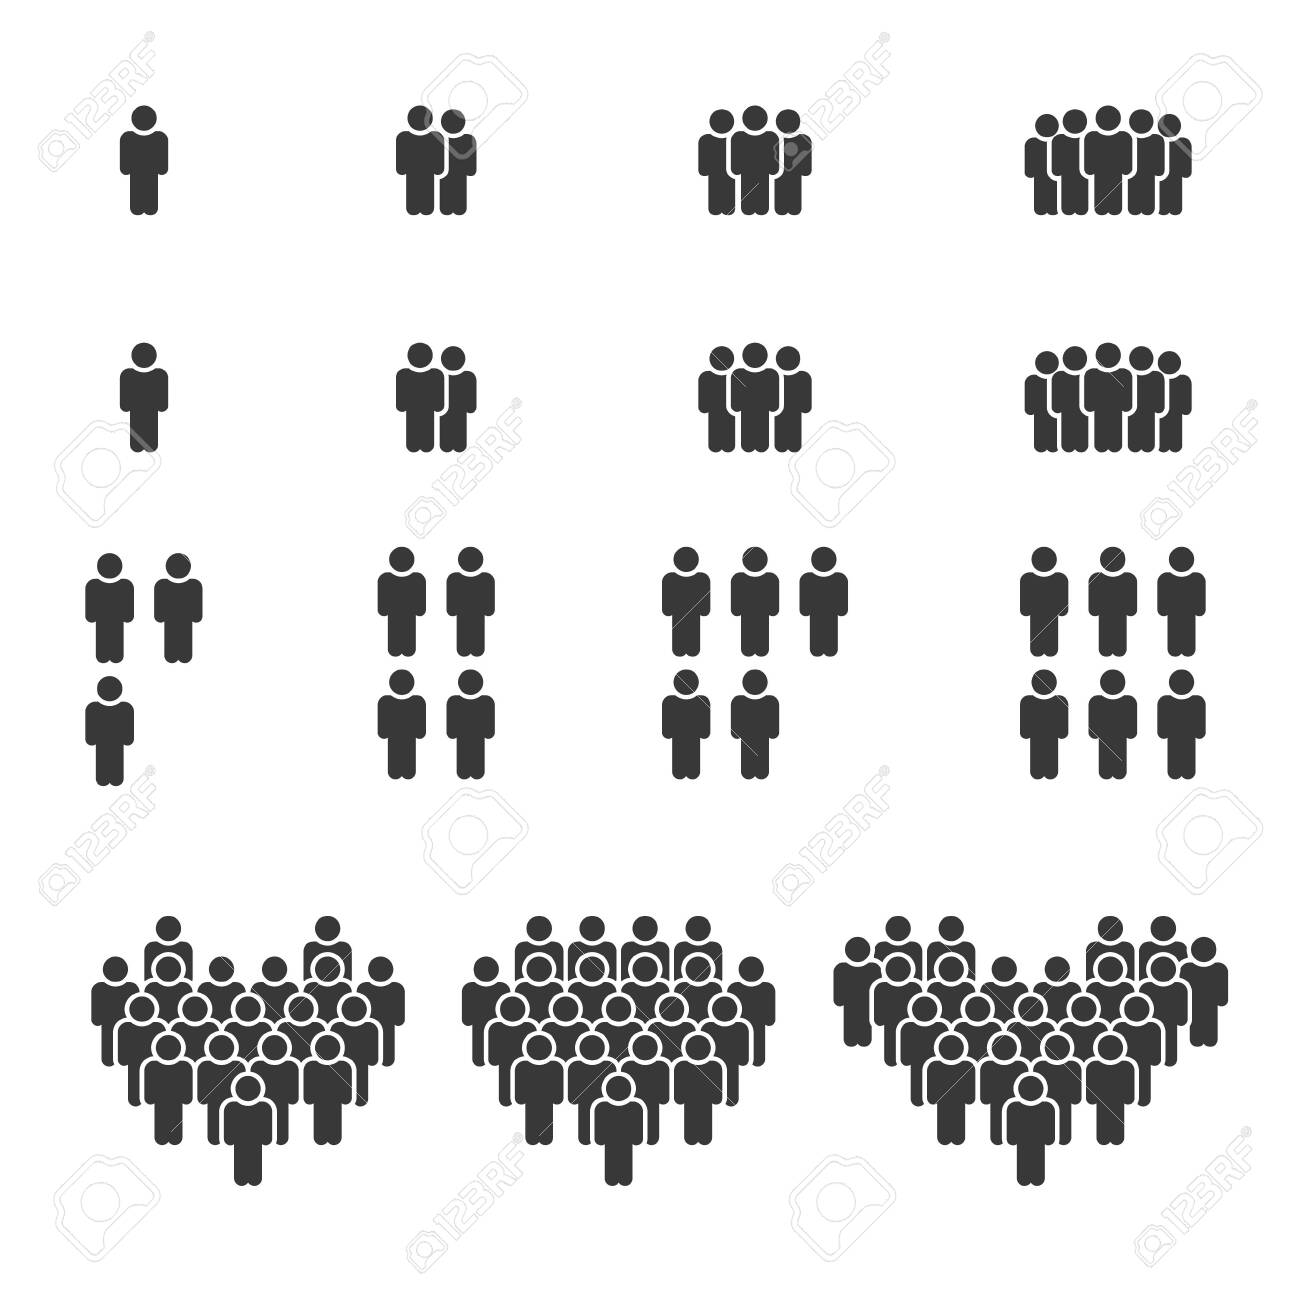 People Icons, Person work group Team Vector - 127179721